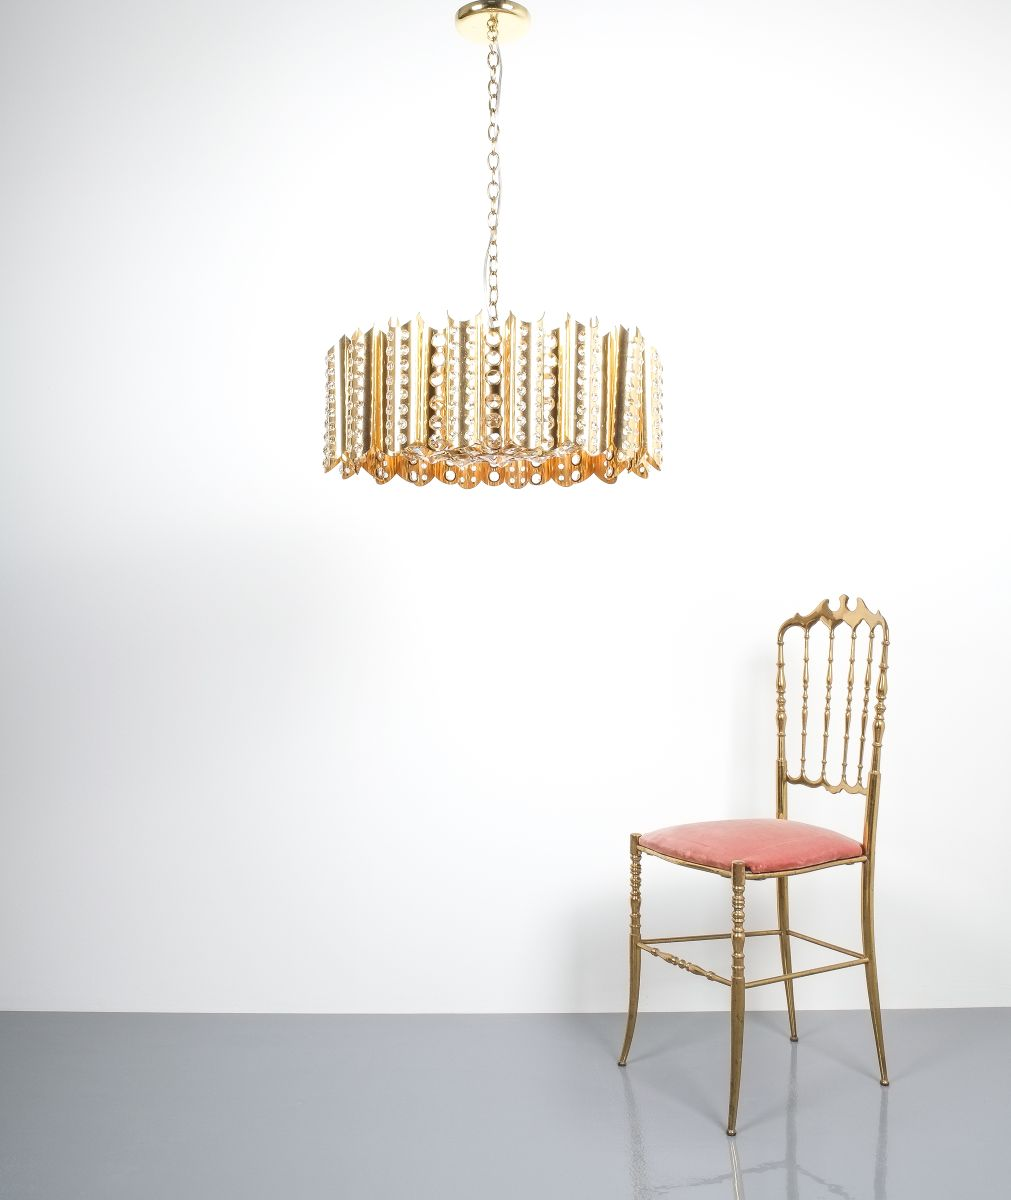 Gold plated chandelier chandelier gallery large gold plated chandeliers by emil stejnar for rupert nikoll aloadofball Choice Image